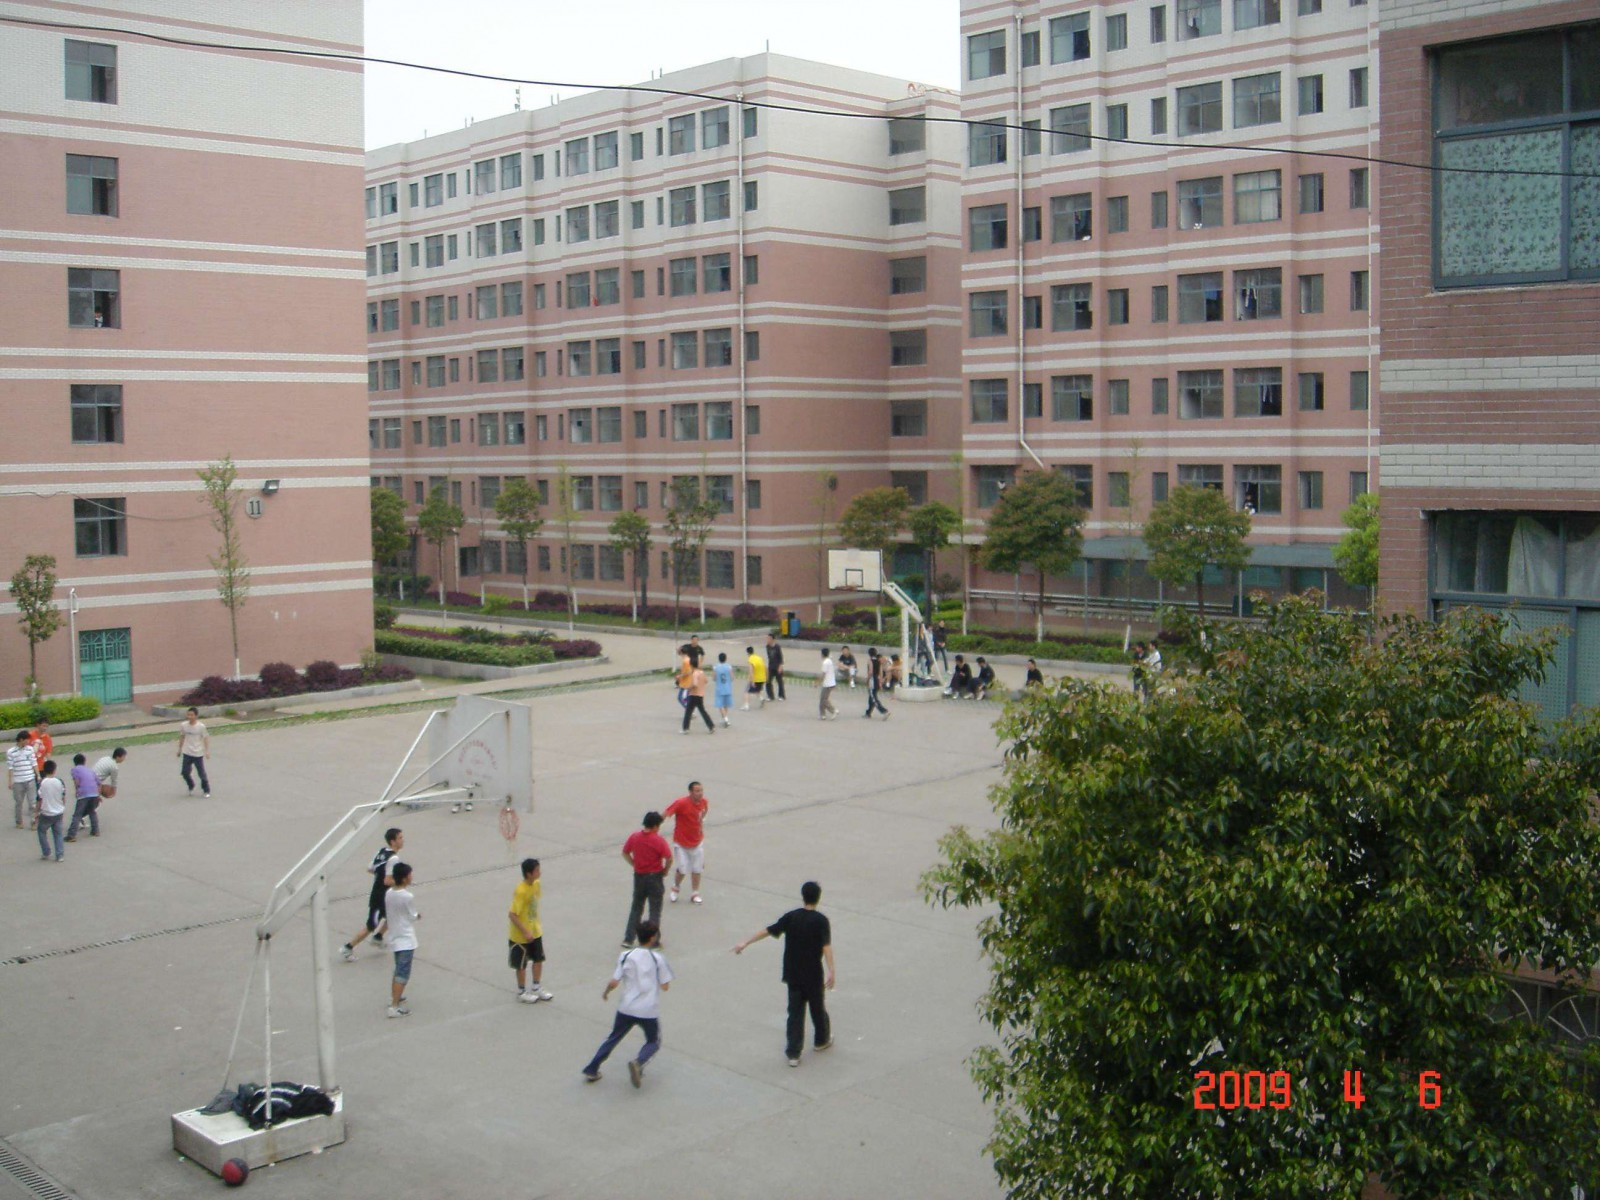 Tai Lake Basketball Courts, Changsha, China